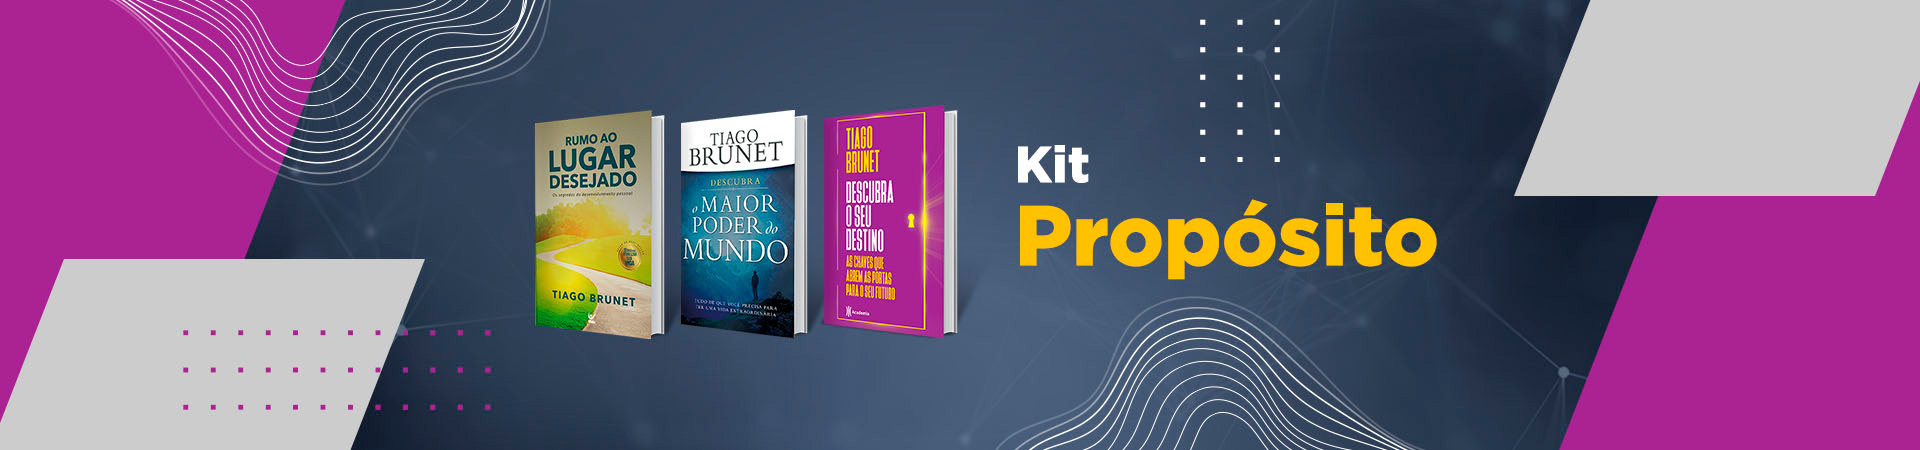 banners-site2020kit-proposito